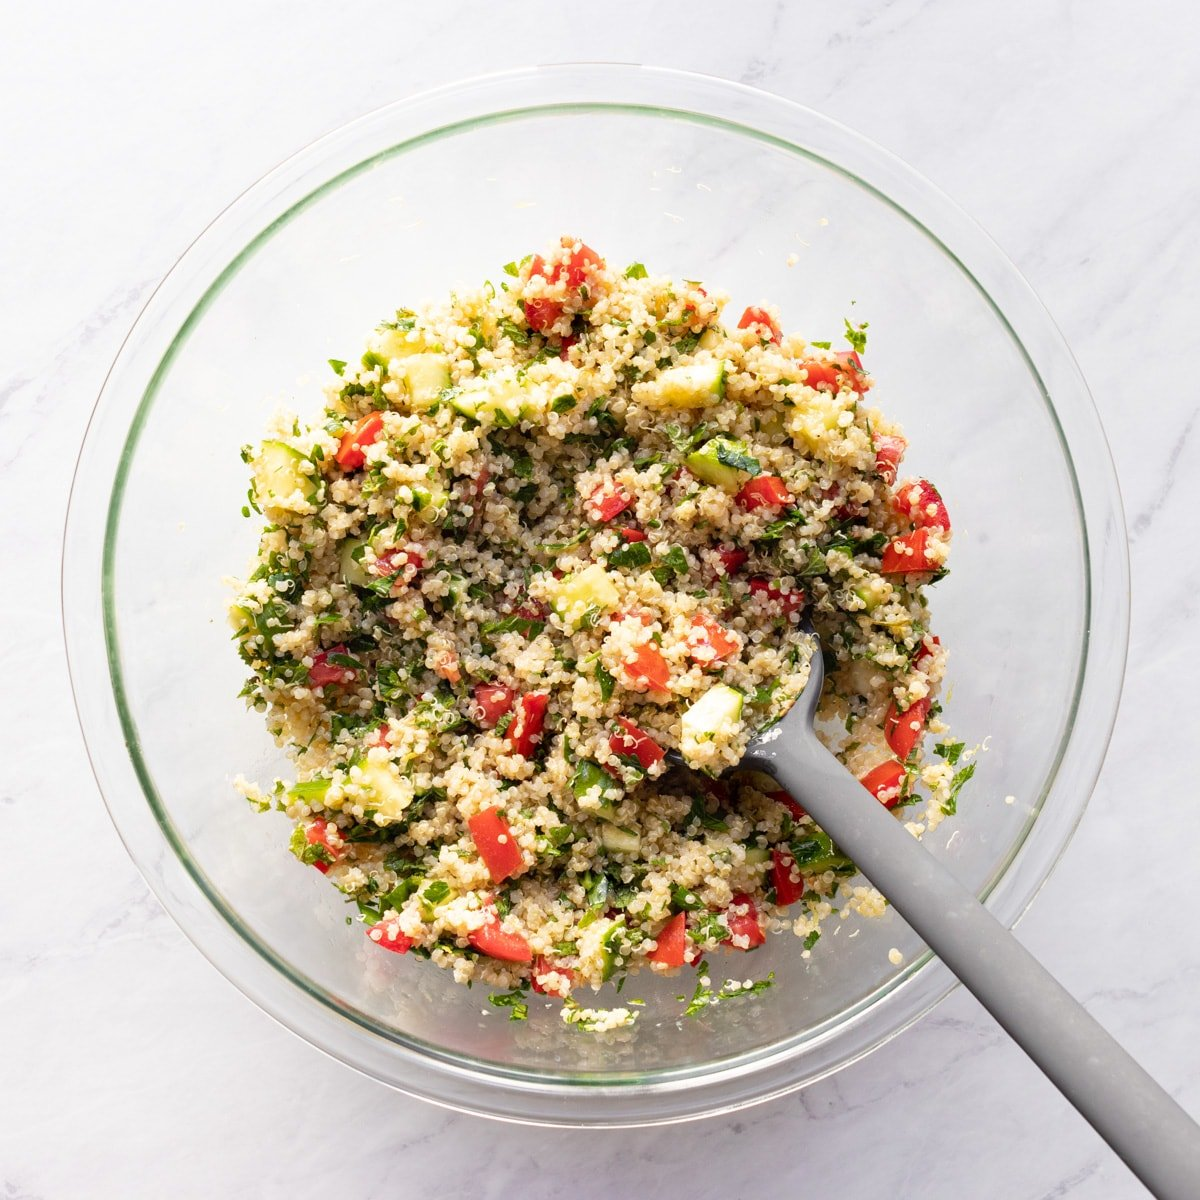 Quinoa, fresh veggies and herbs have been mixed with a lemon vinaigrette in a large glass bowl with a gray silicone scoopula